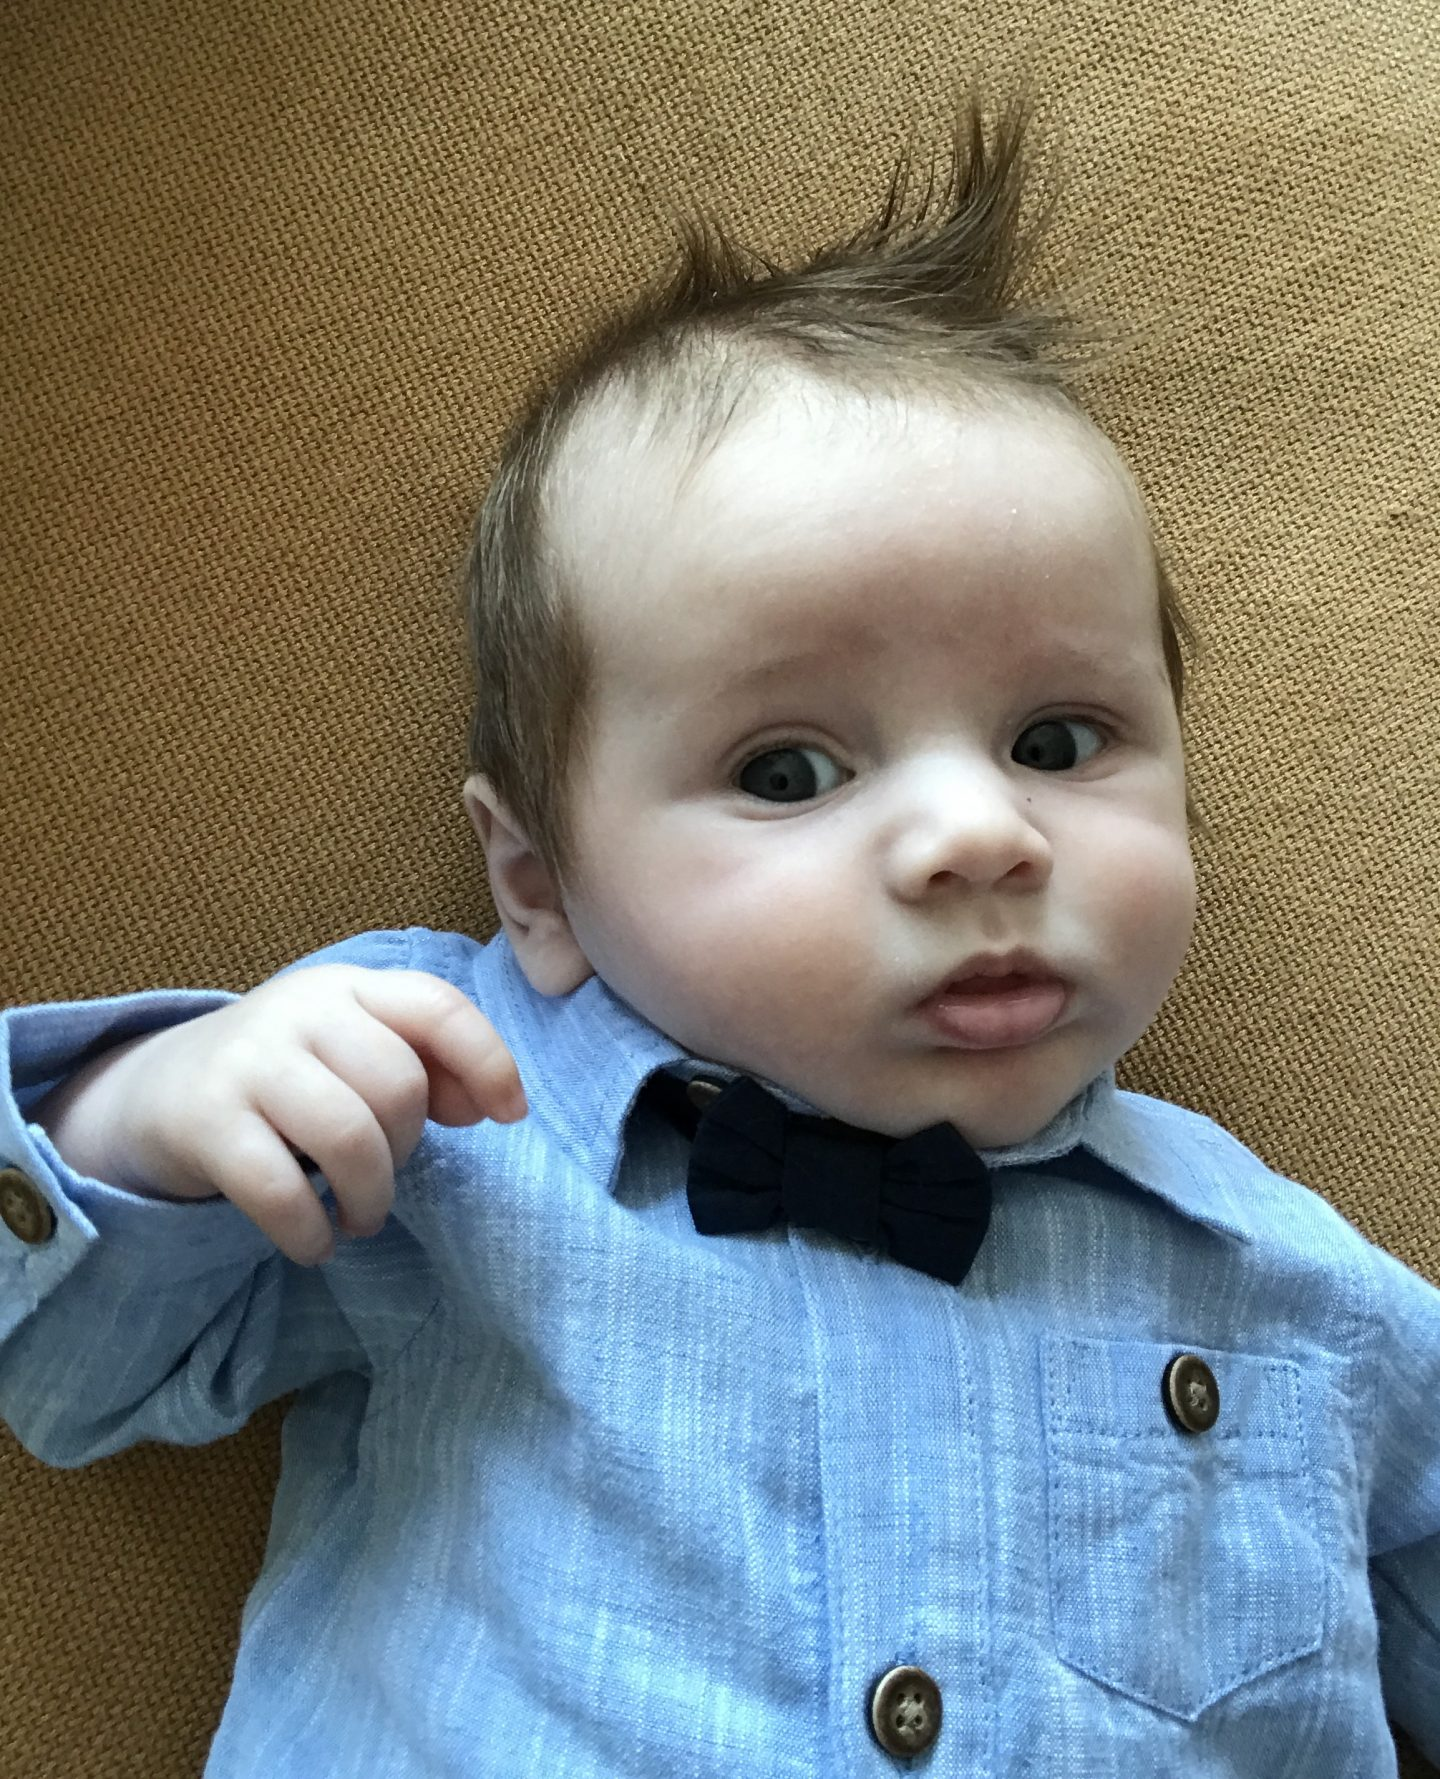 baby in a wedding suit